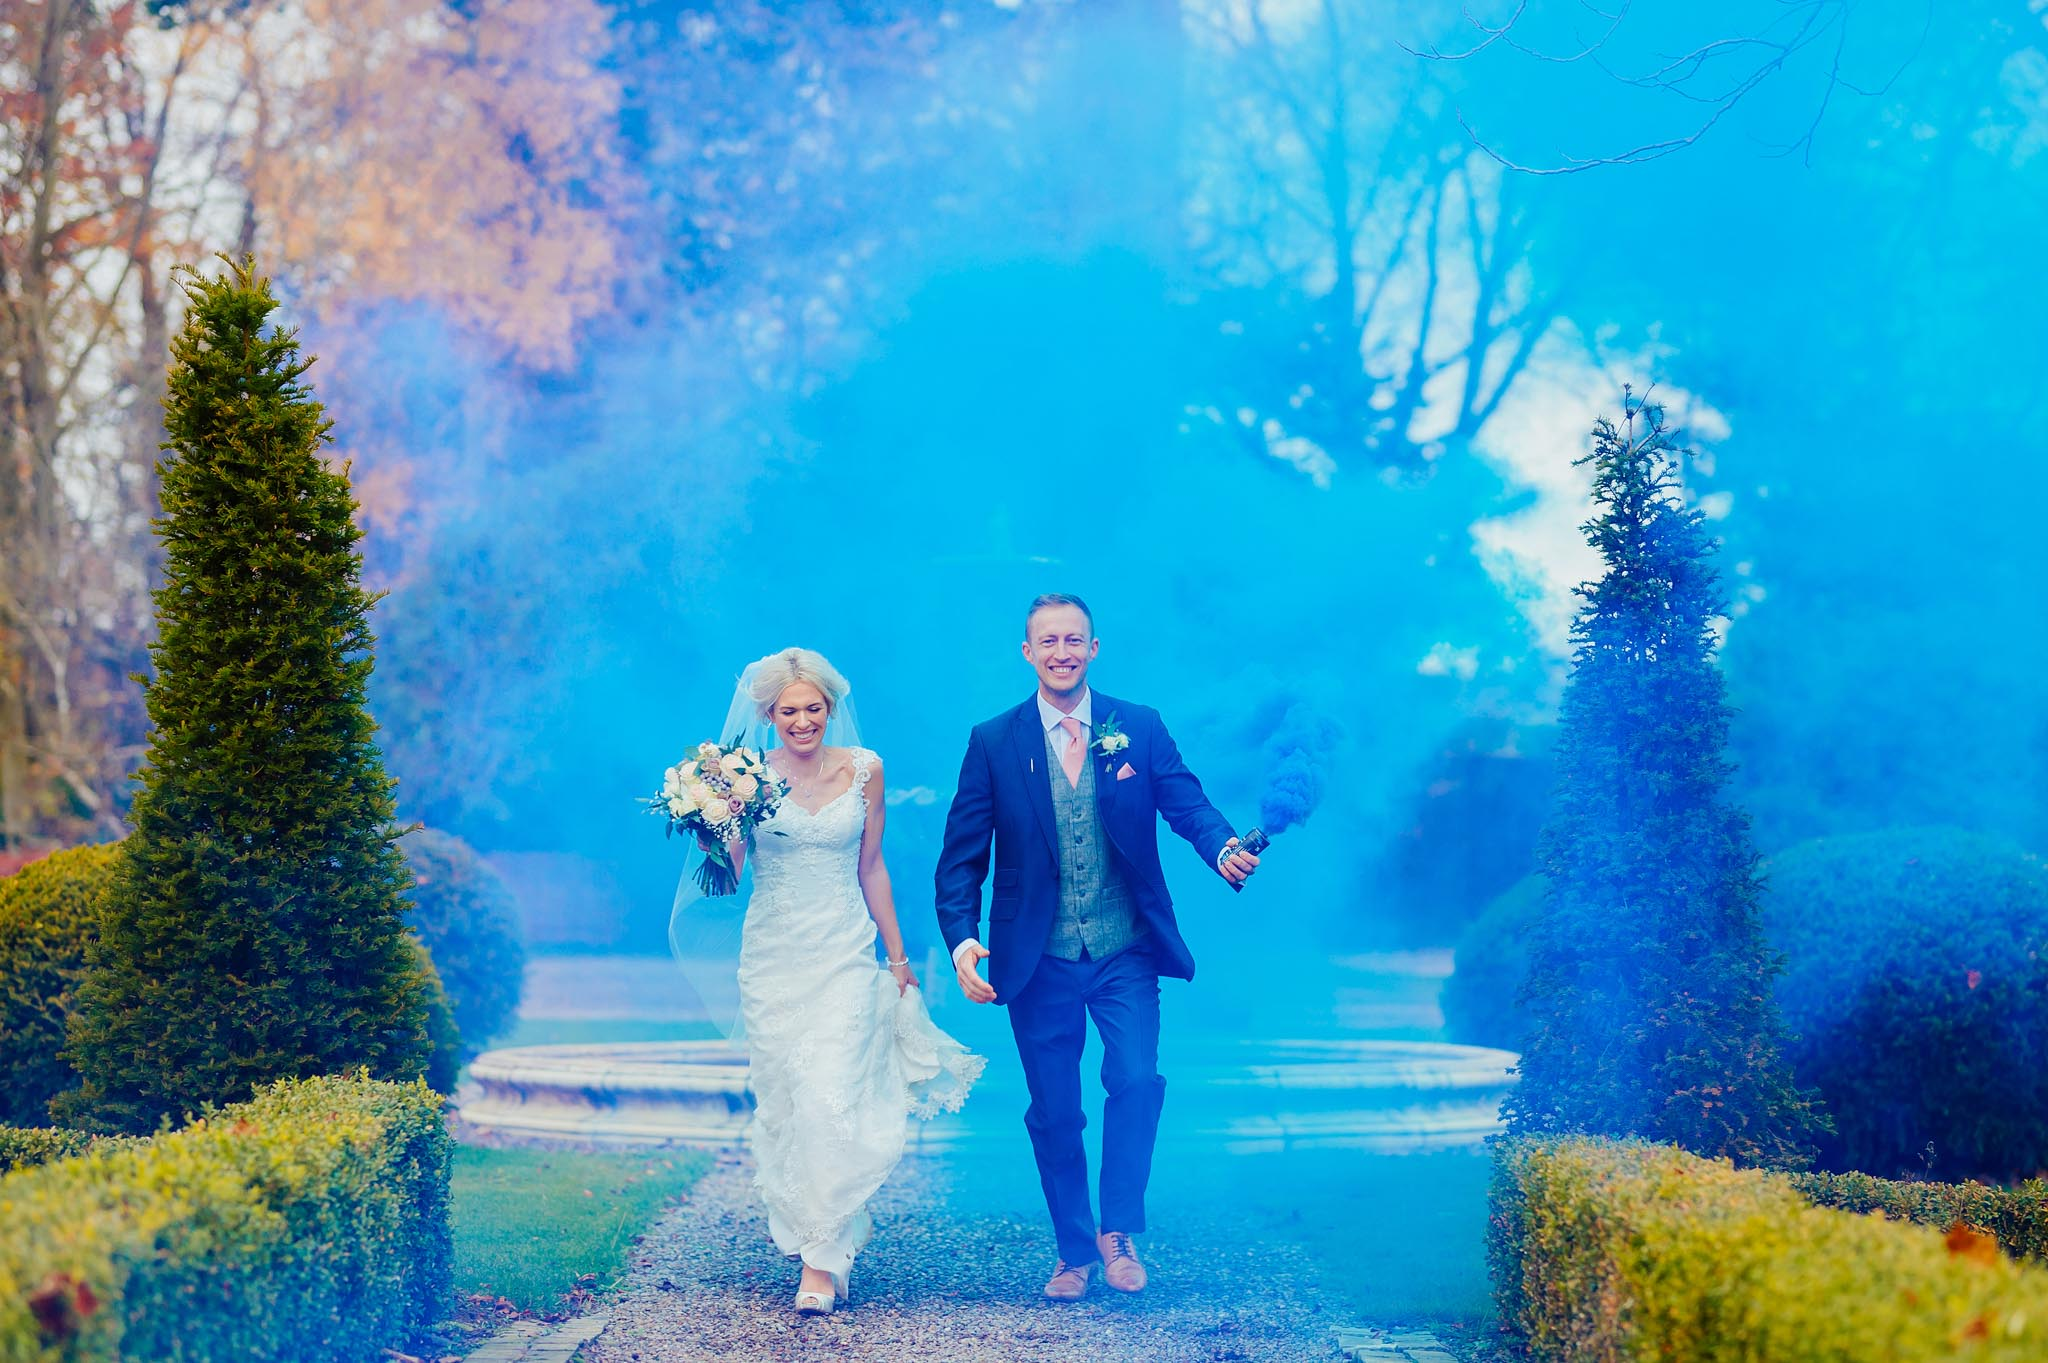 lemore manor wedding herefordshire 107 - Lemore Manor wedding, Herefordshire - West Midlands | Sadie + Ken